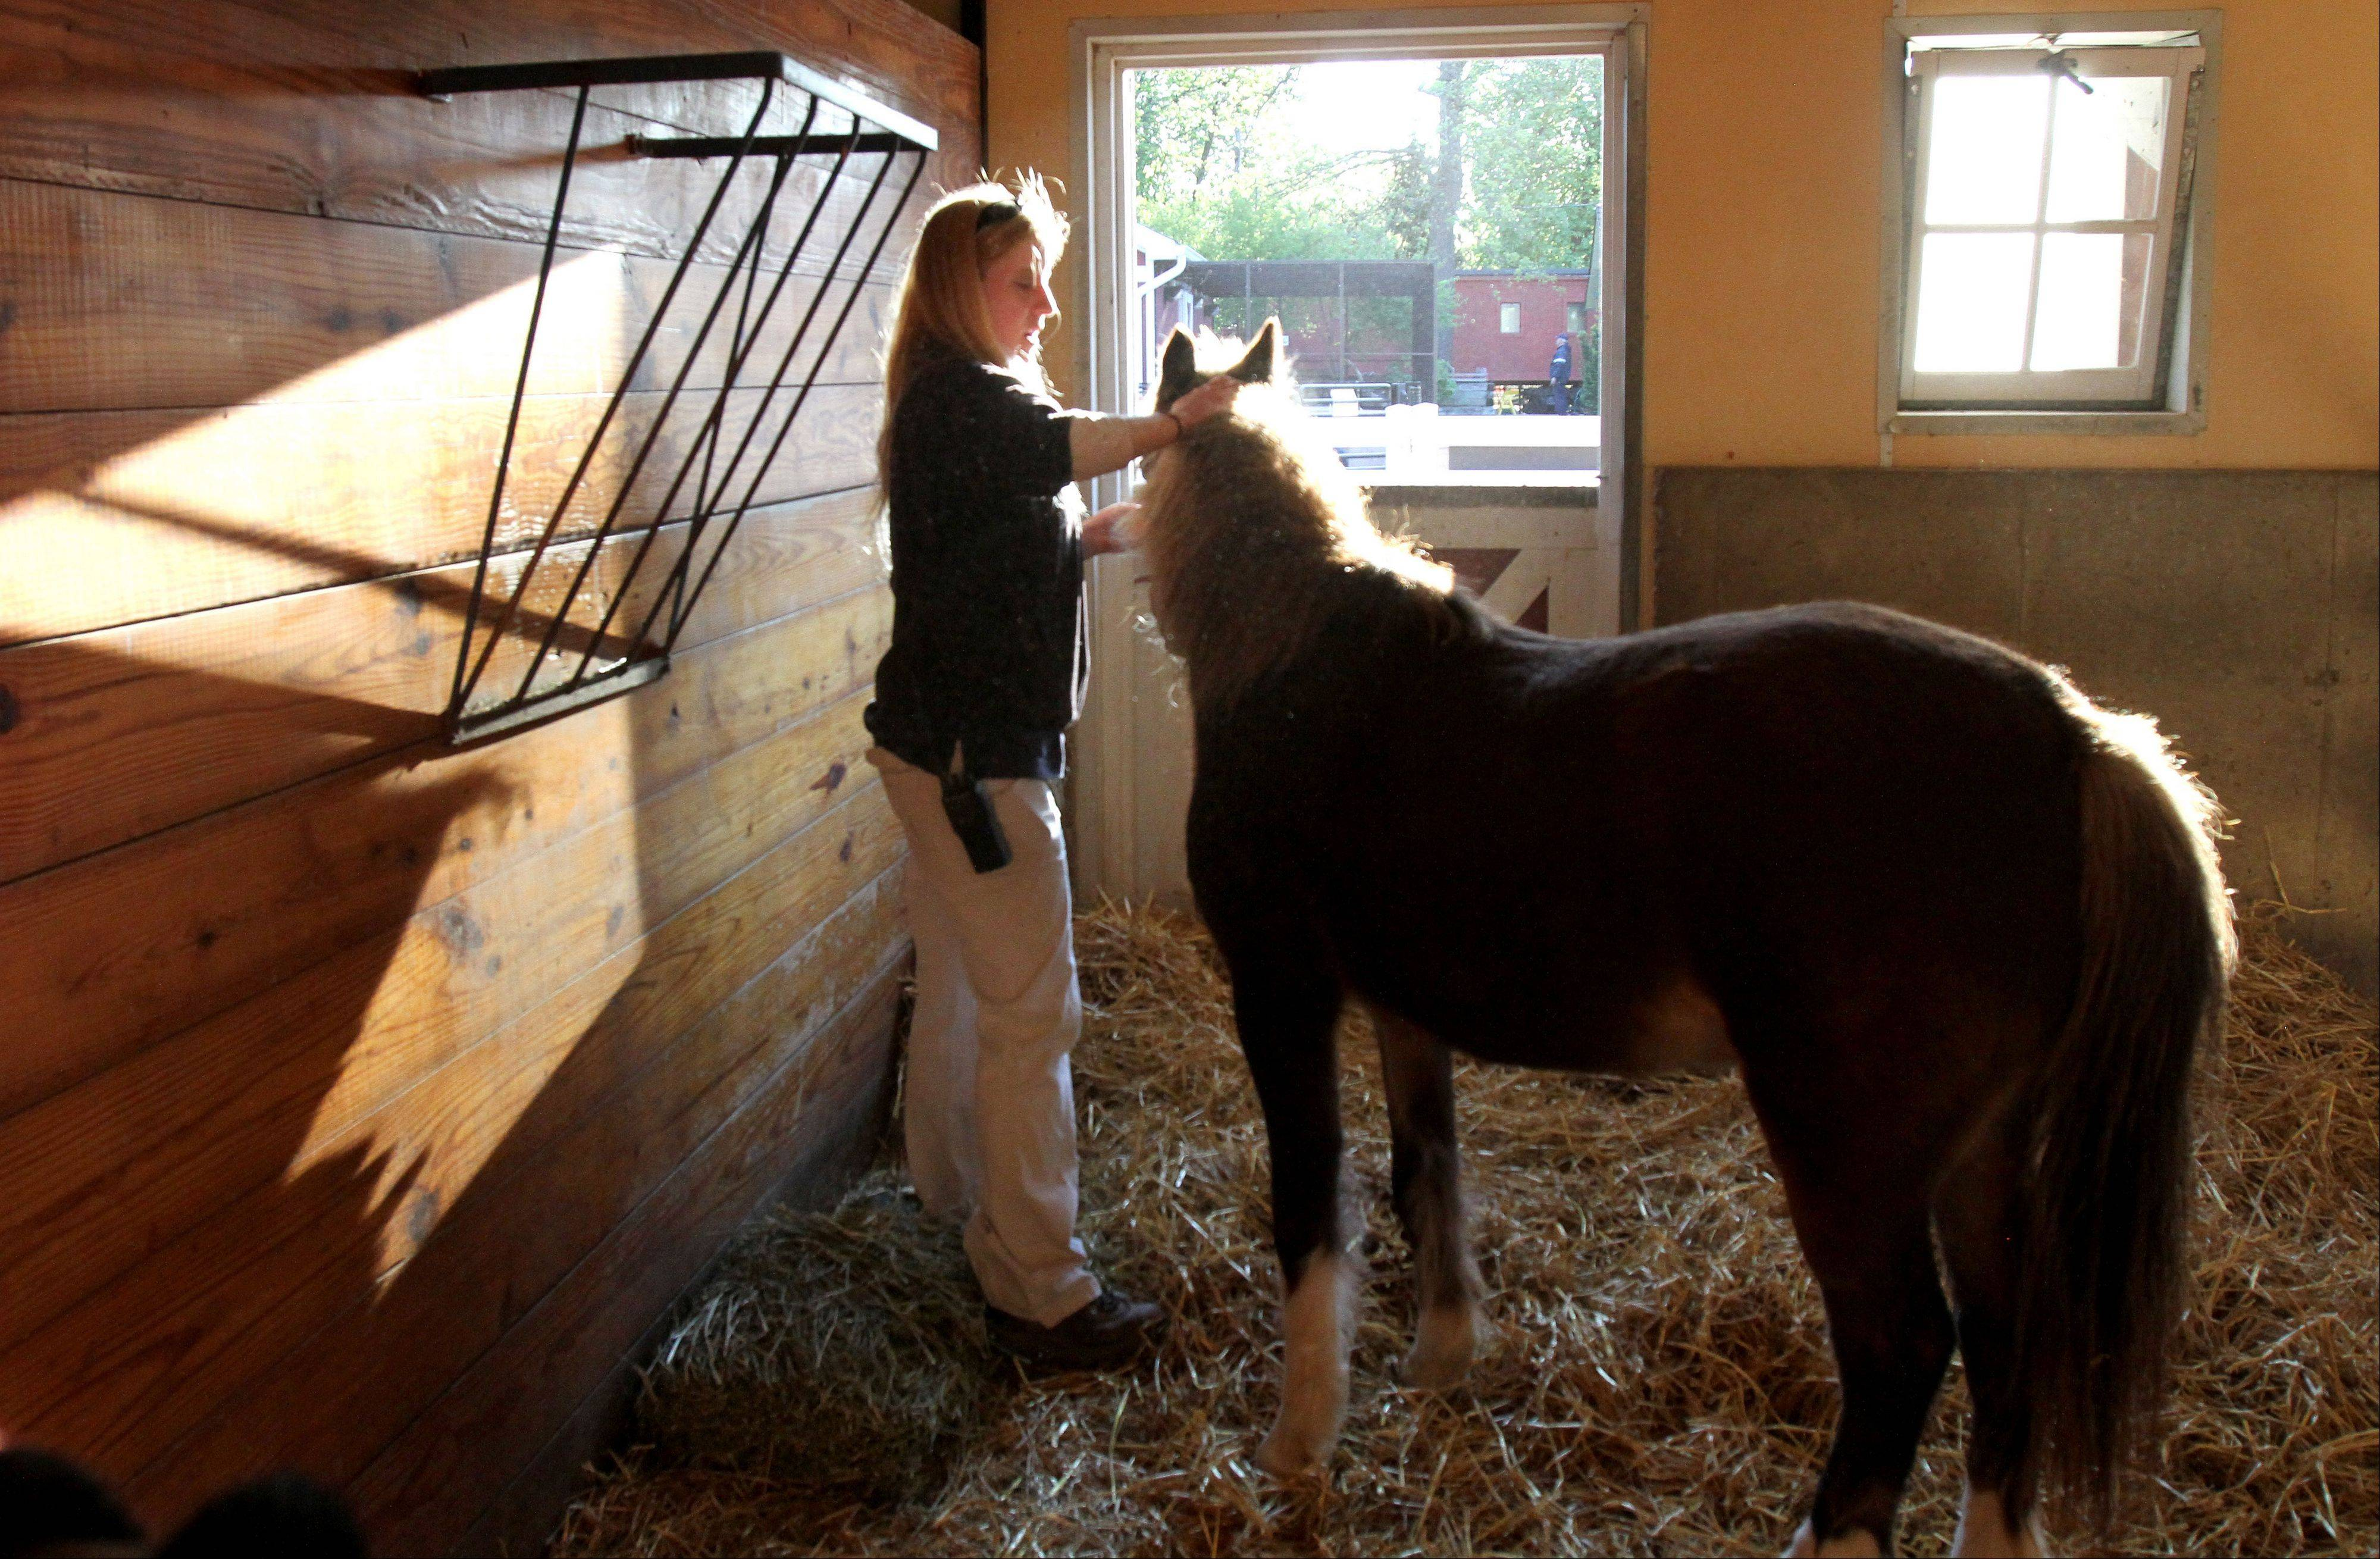 Caryn Lowe, zookeeper at Cosley Zoo in Wheaton, grooms Pro, a Shetland pony as she gets him ready for the day.